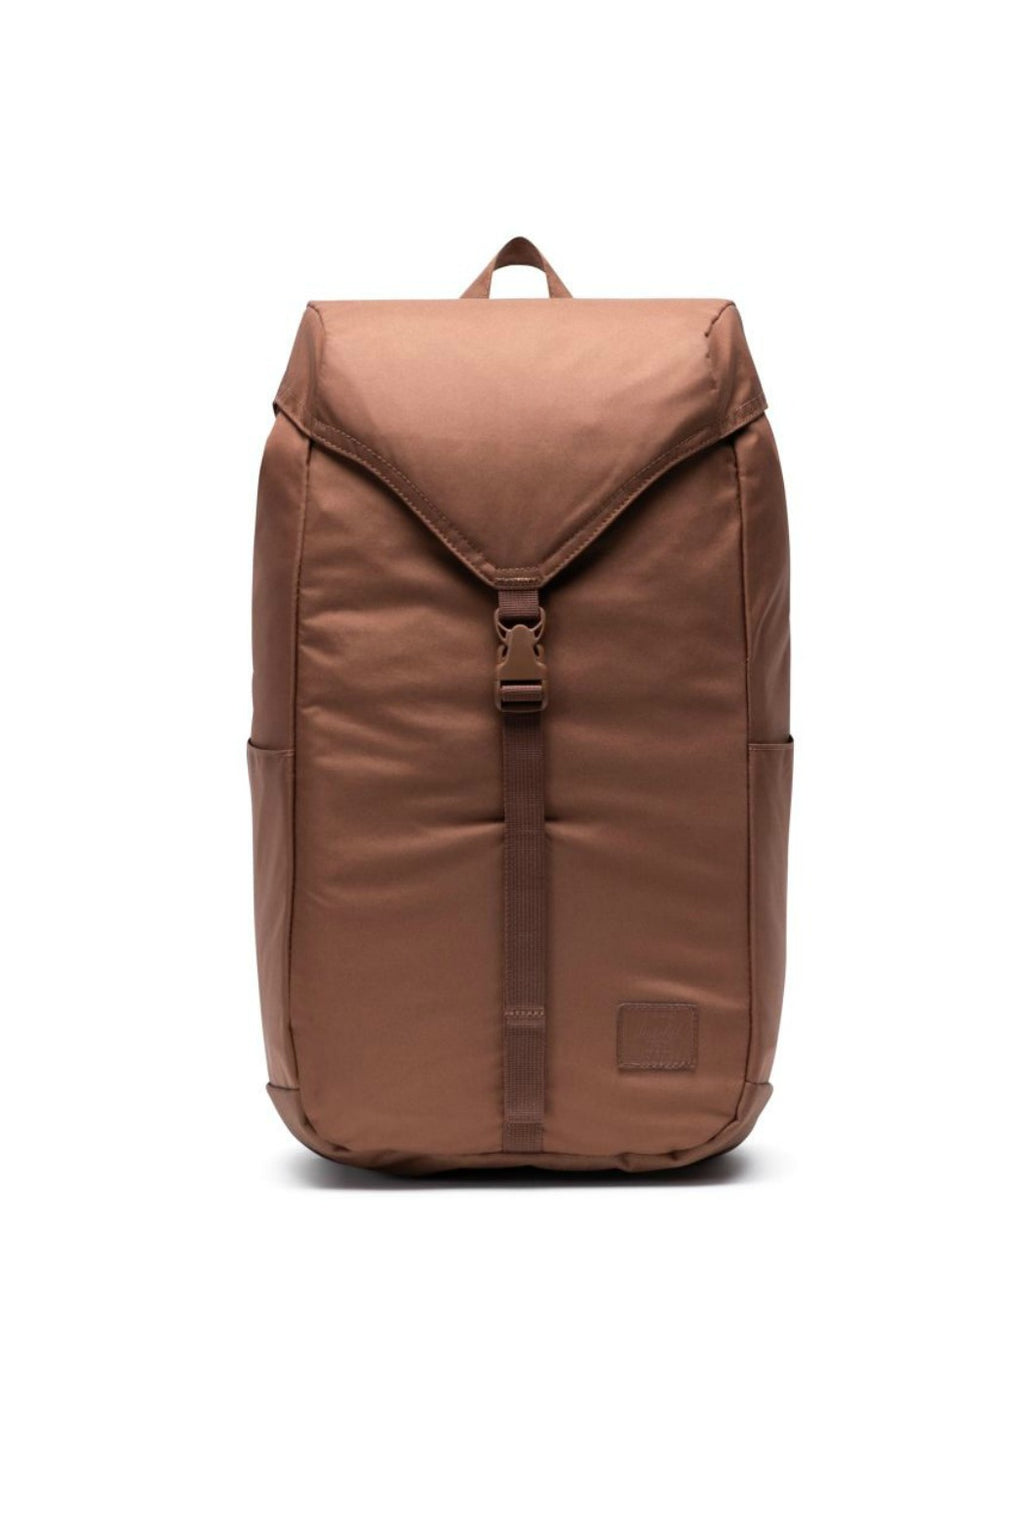 Herschel Supply Co. Thompson Backpack Light Poly - Saddle Brown